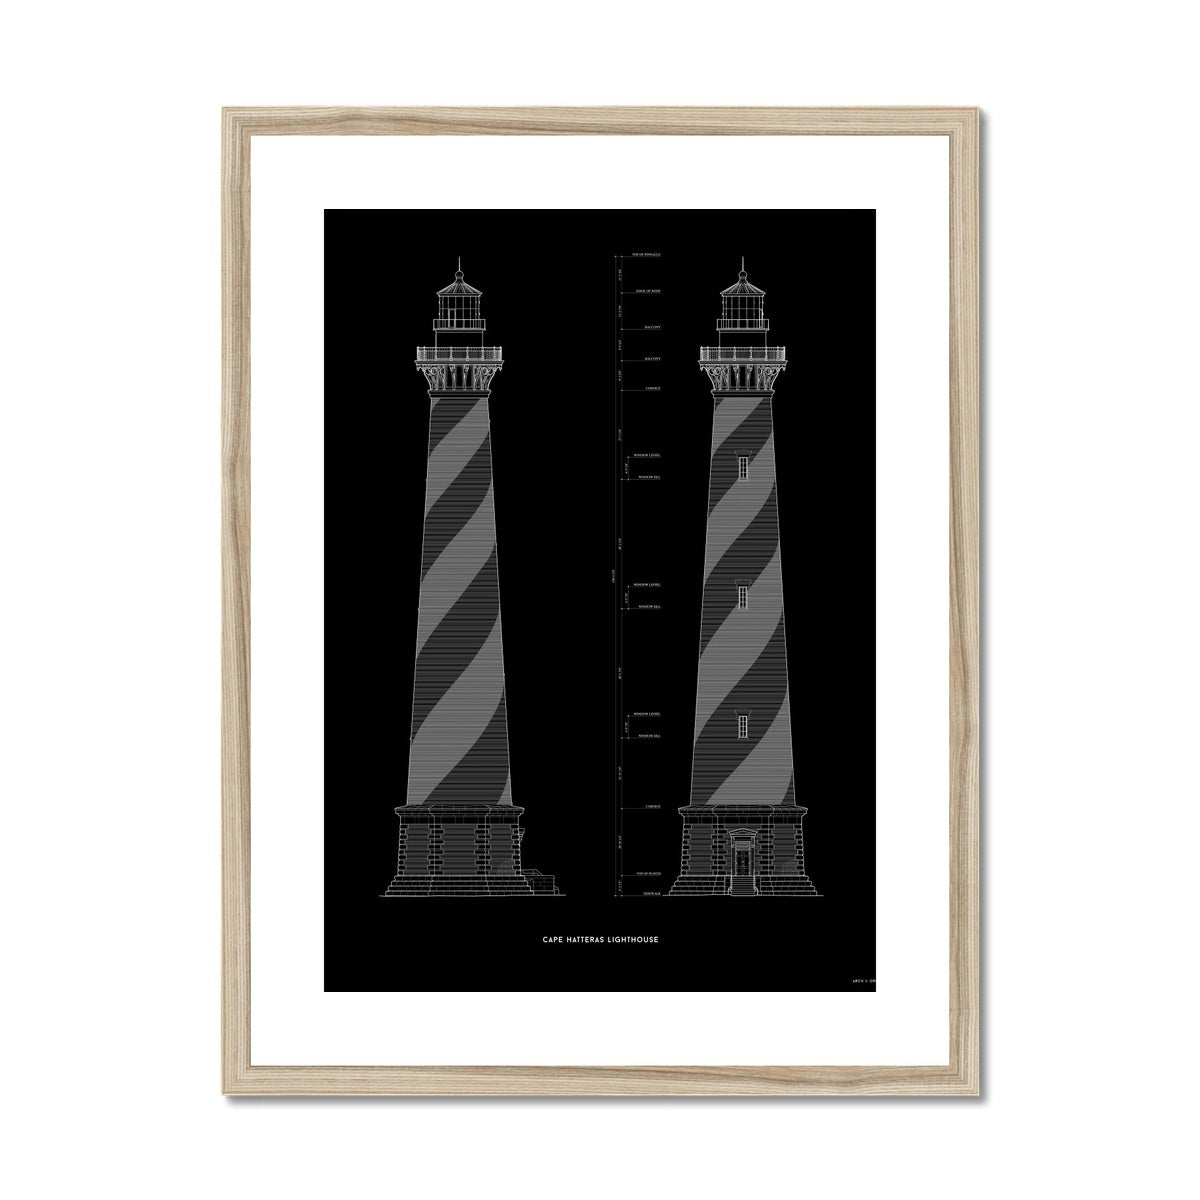 Cape Hatteras Lighthouse - North and East Elevations - Black -  Framed & Mounted Print